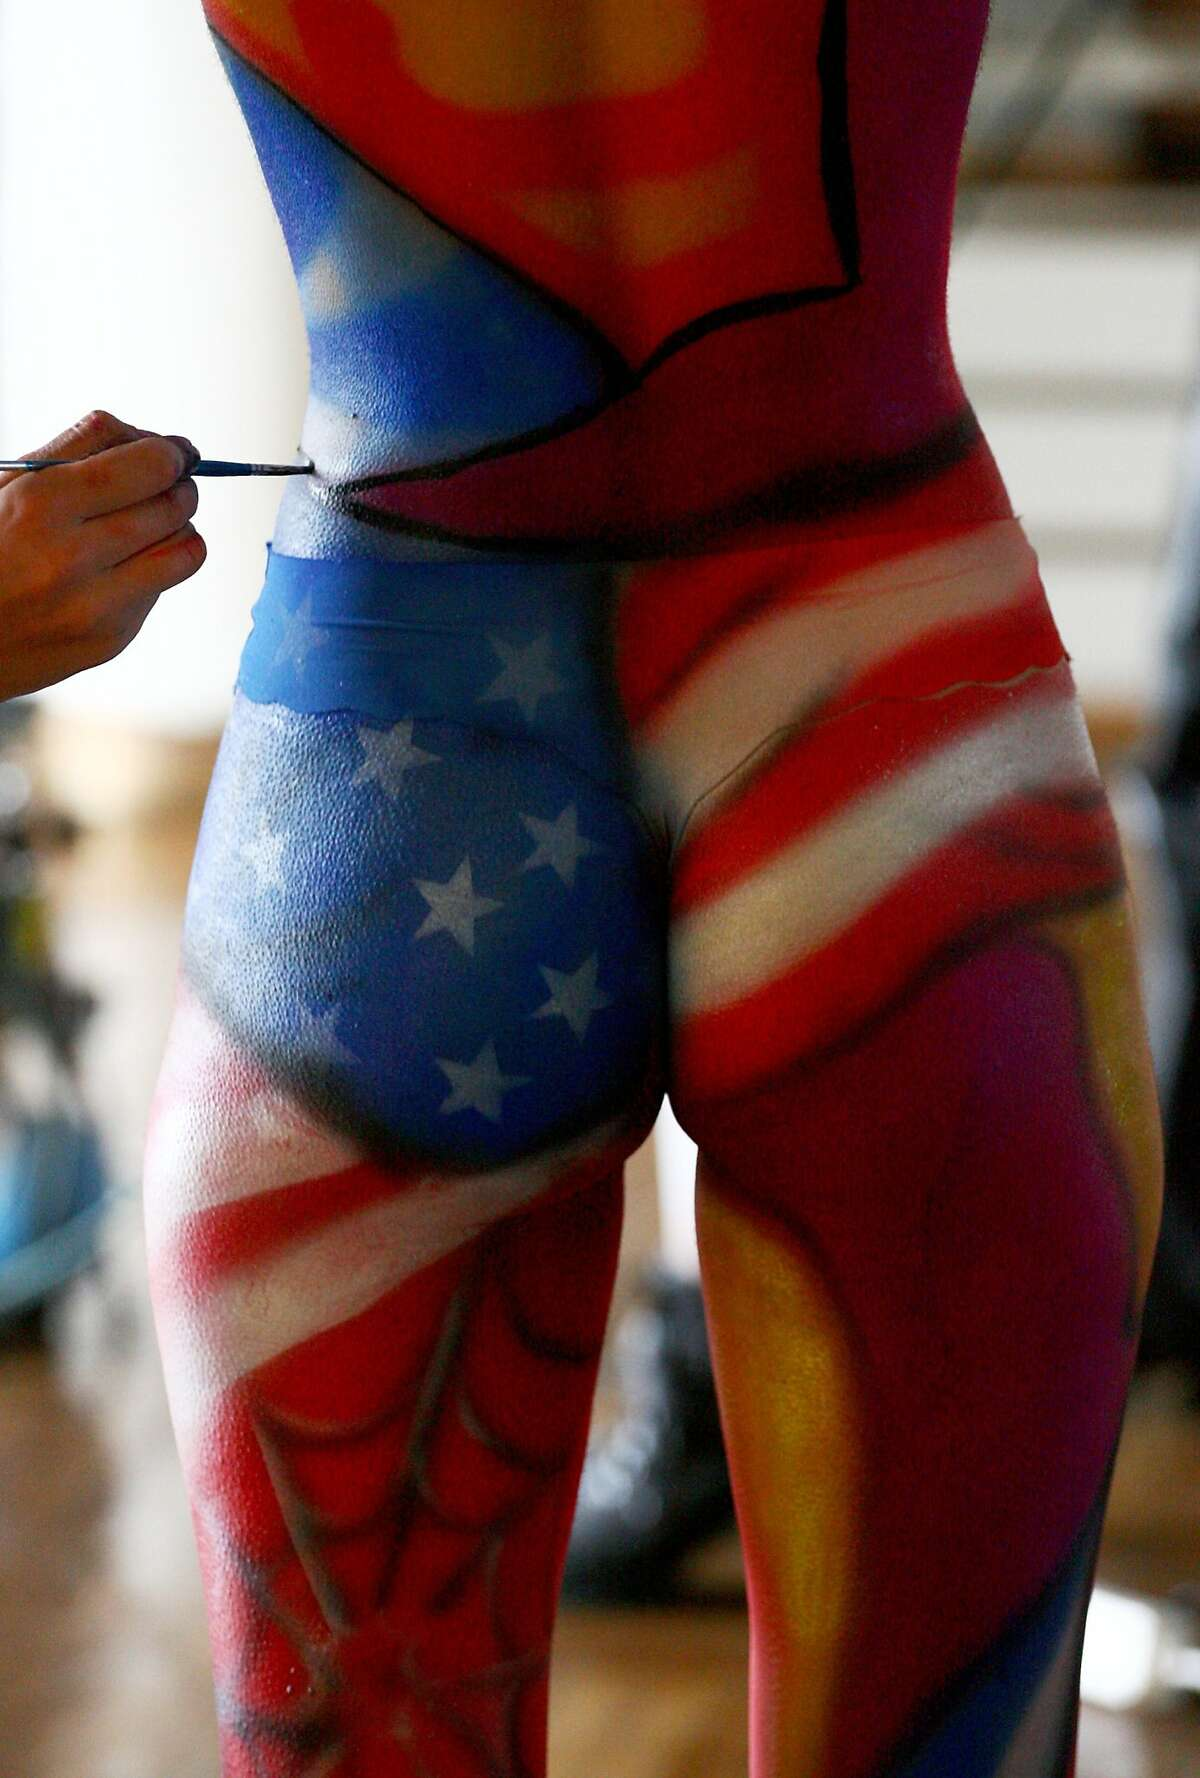 The star-spangled backside: An artist paints the body of a model at the International Tattoo and Body-art Festival in Minsk.